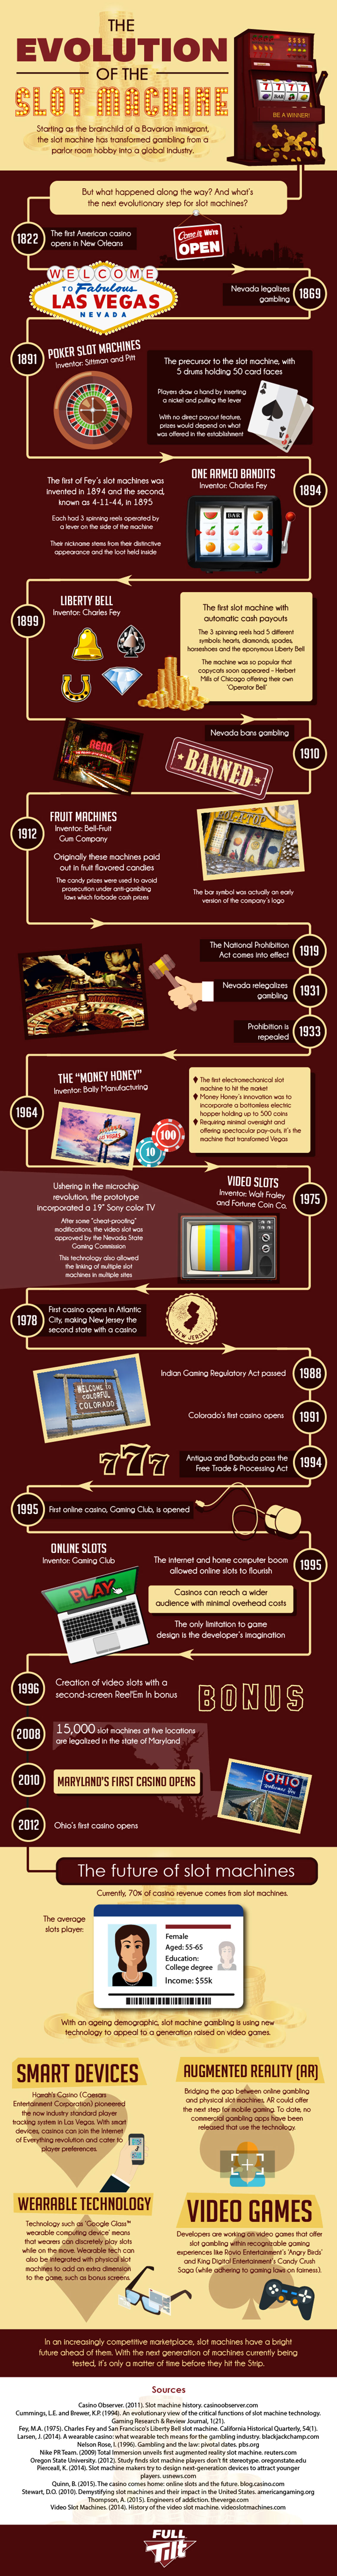 Evolution of the Slot Machines Infographic